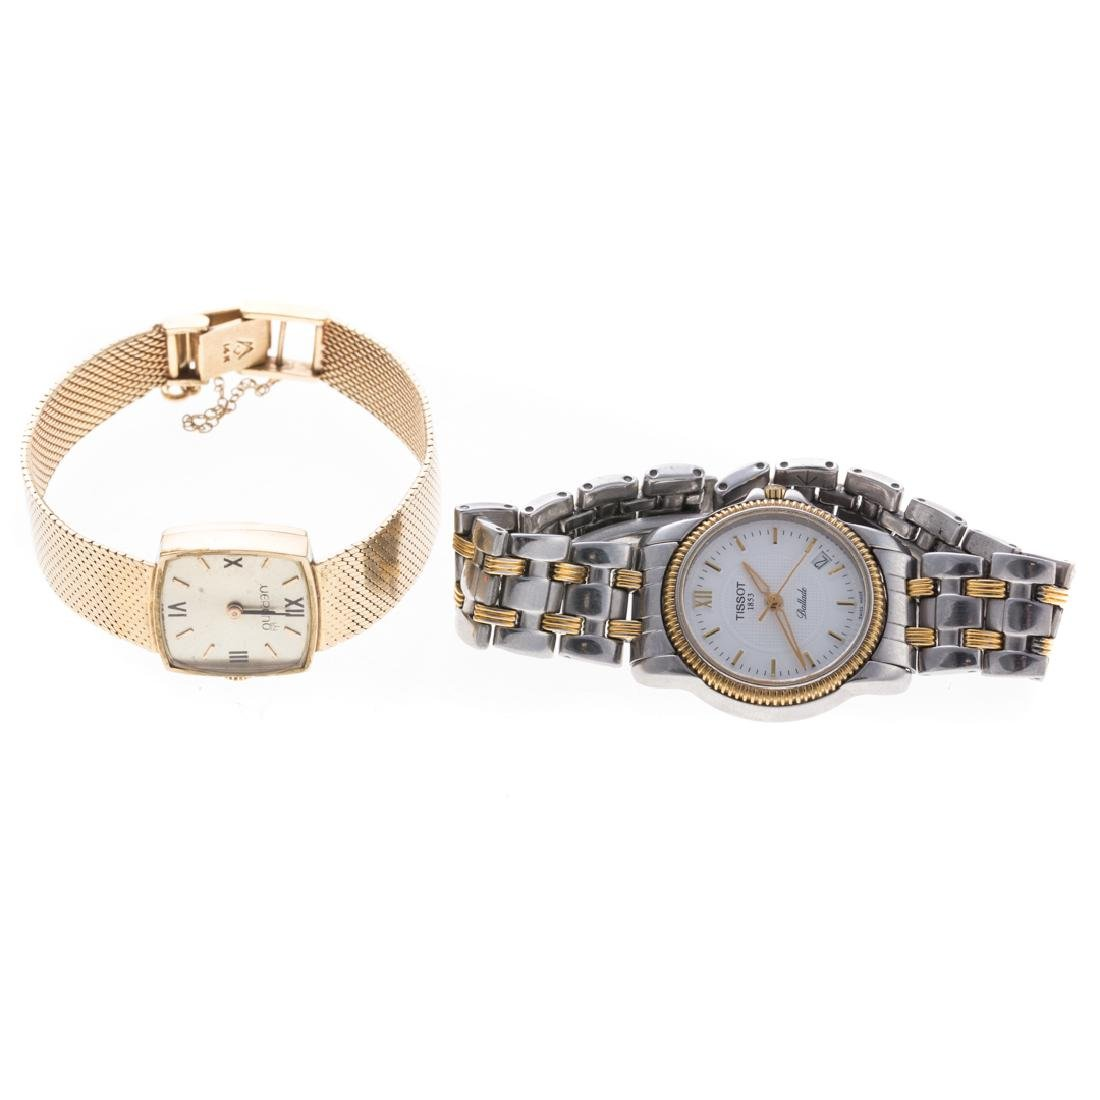 A Lady's 14K Merano & Two Tone Tissot Watches